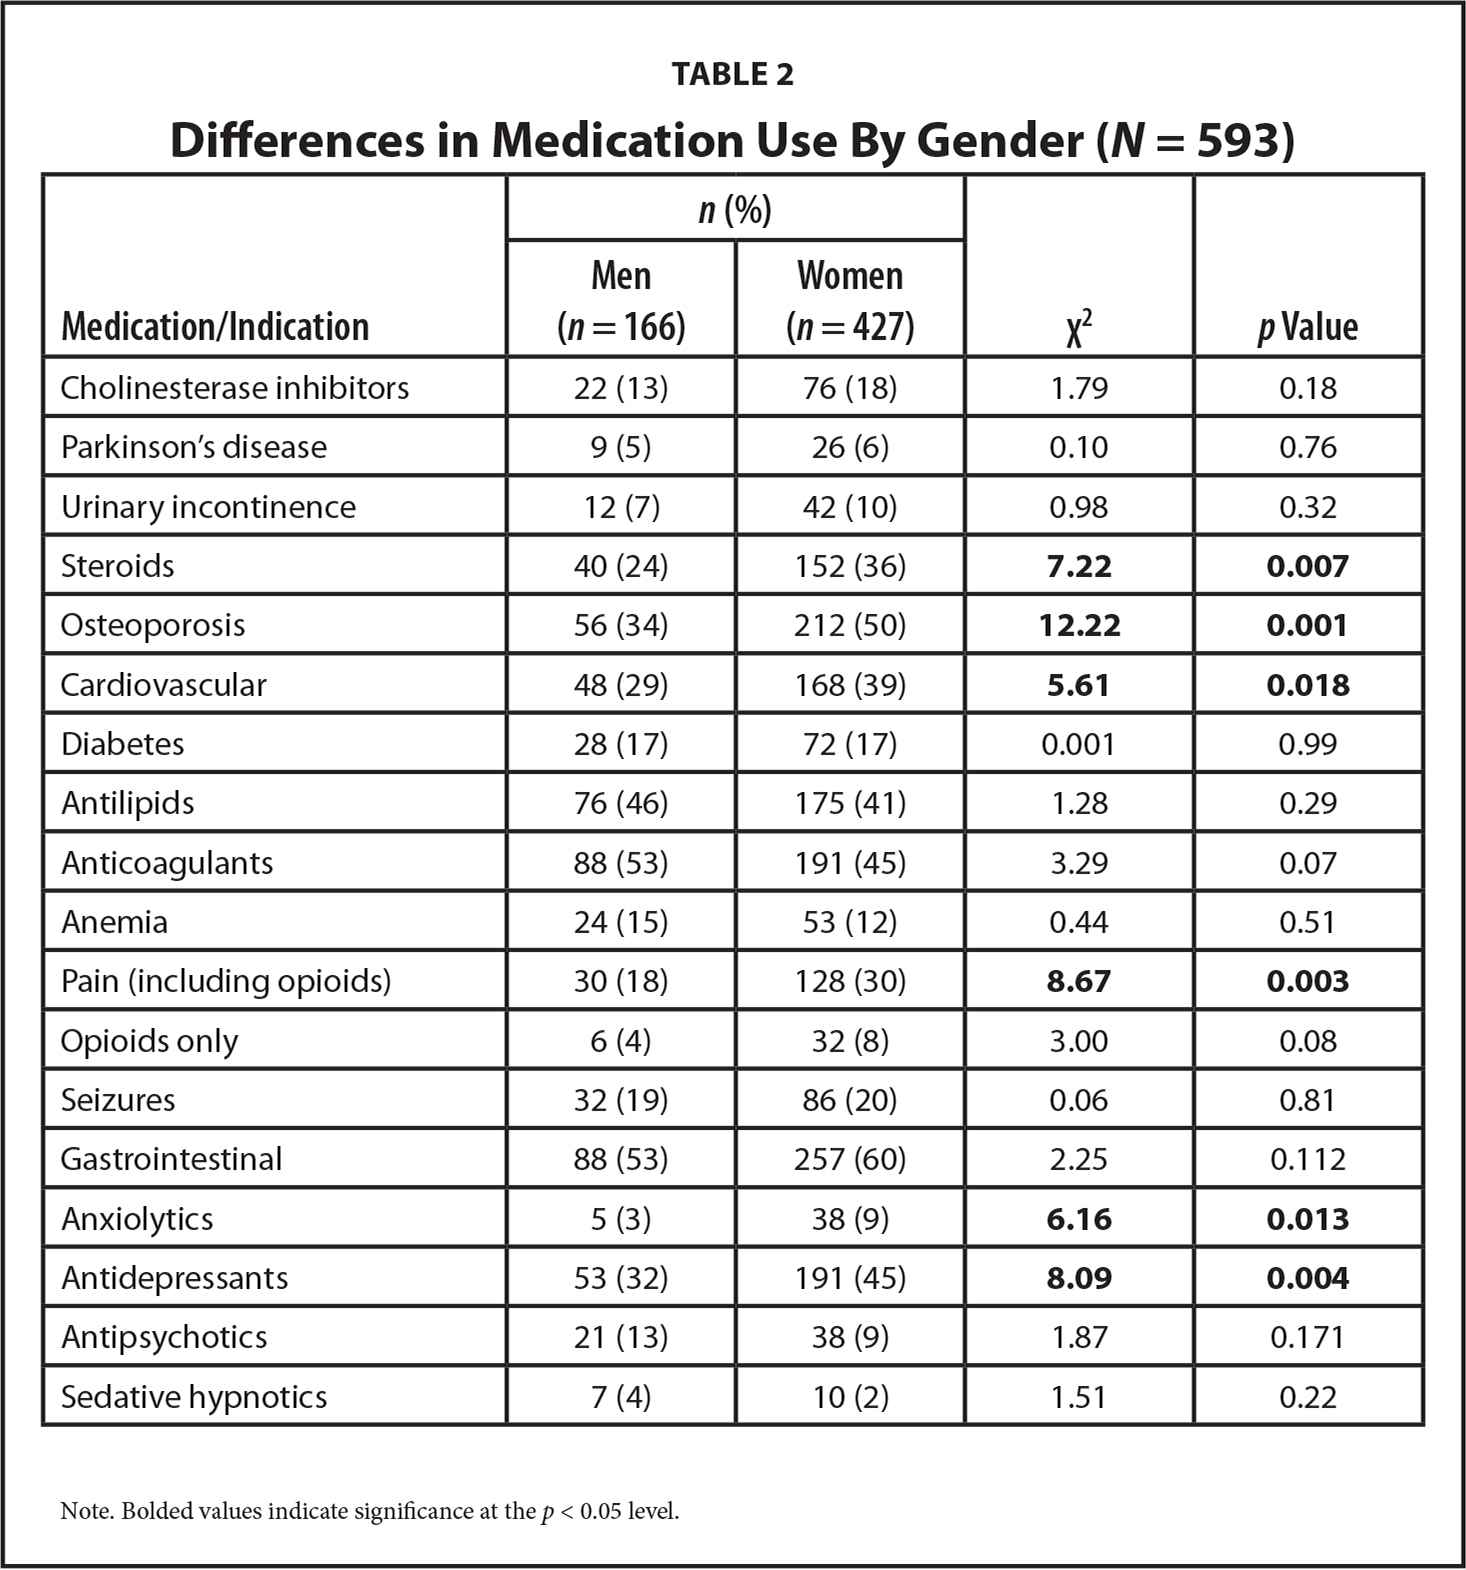 Differences in Medication Use By Gender (N = 593)